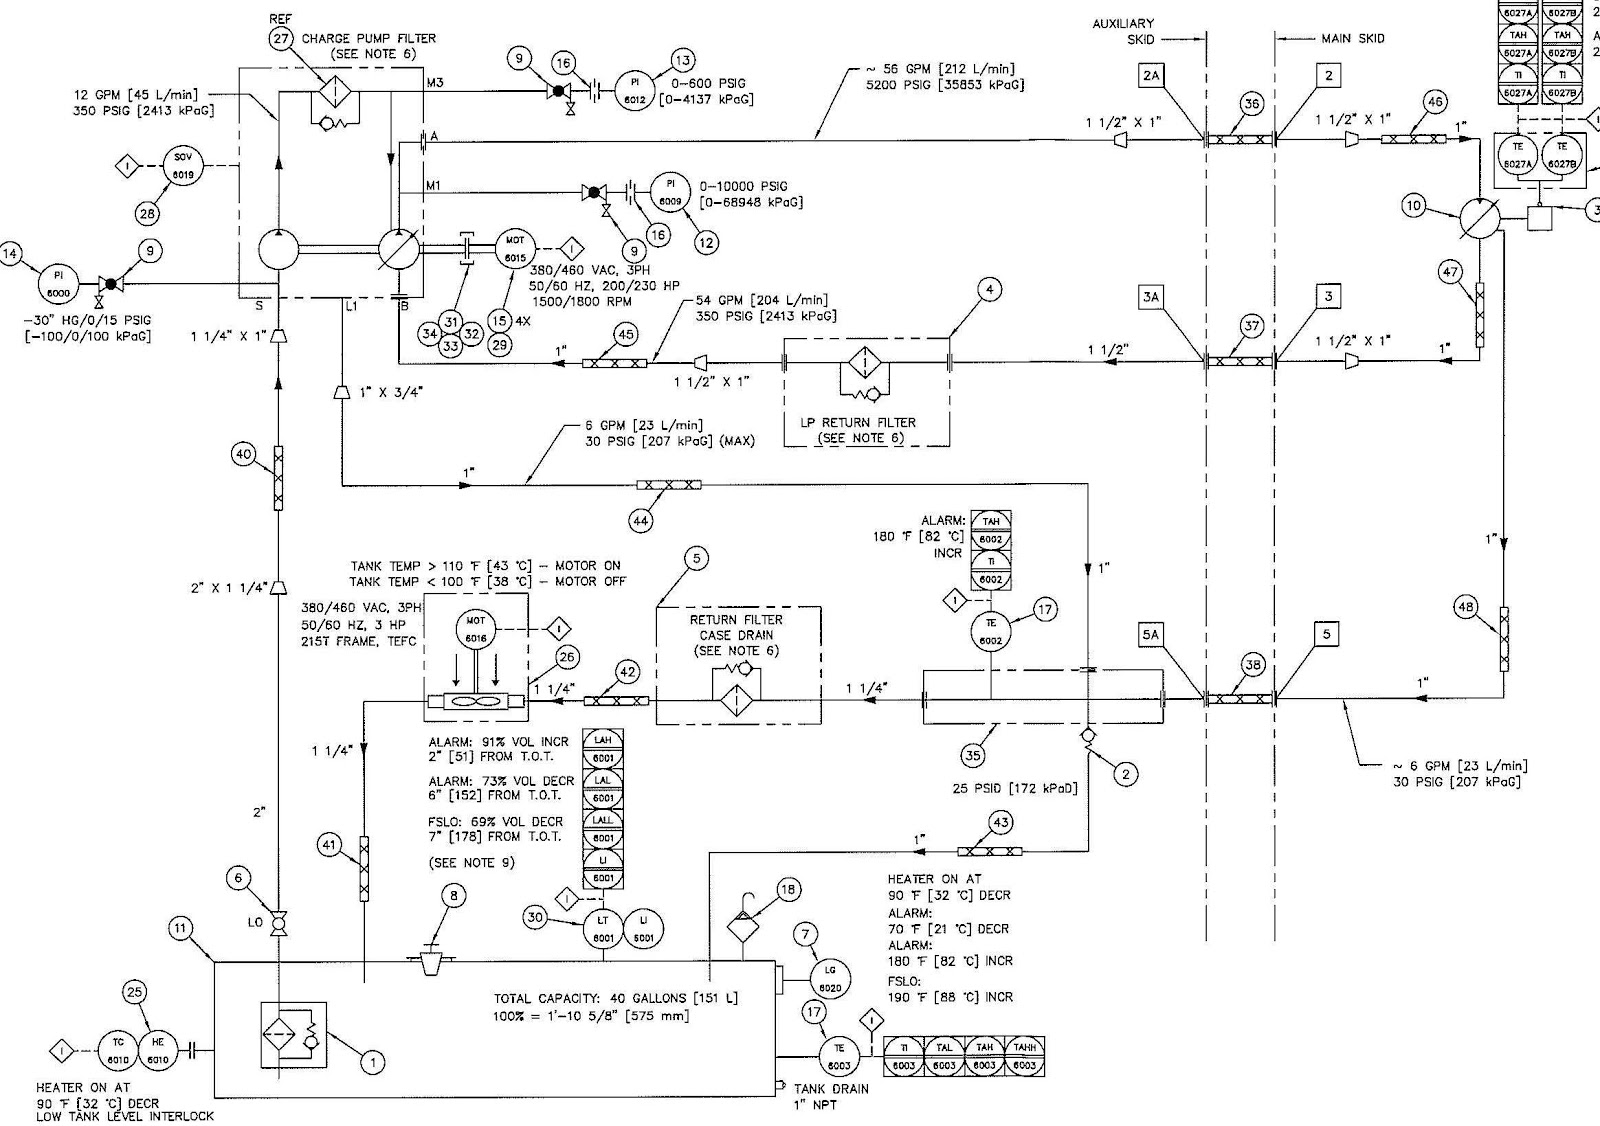 Beef Cattle Diagram also Reading Schematic further Electrical Schematic Diagrams besides Watch together with Watch. on training wiring schematic